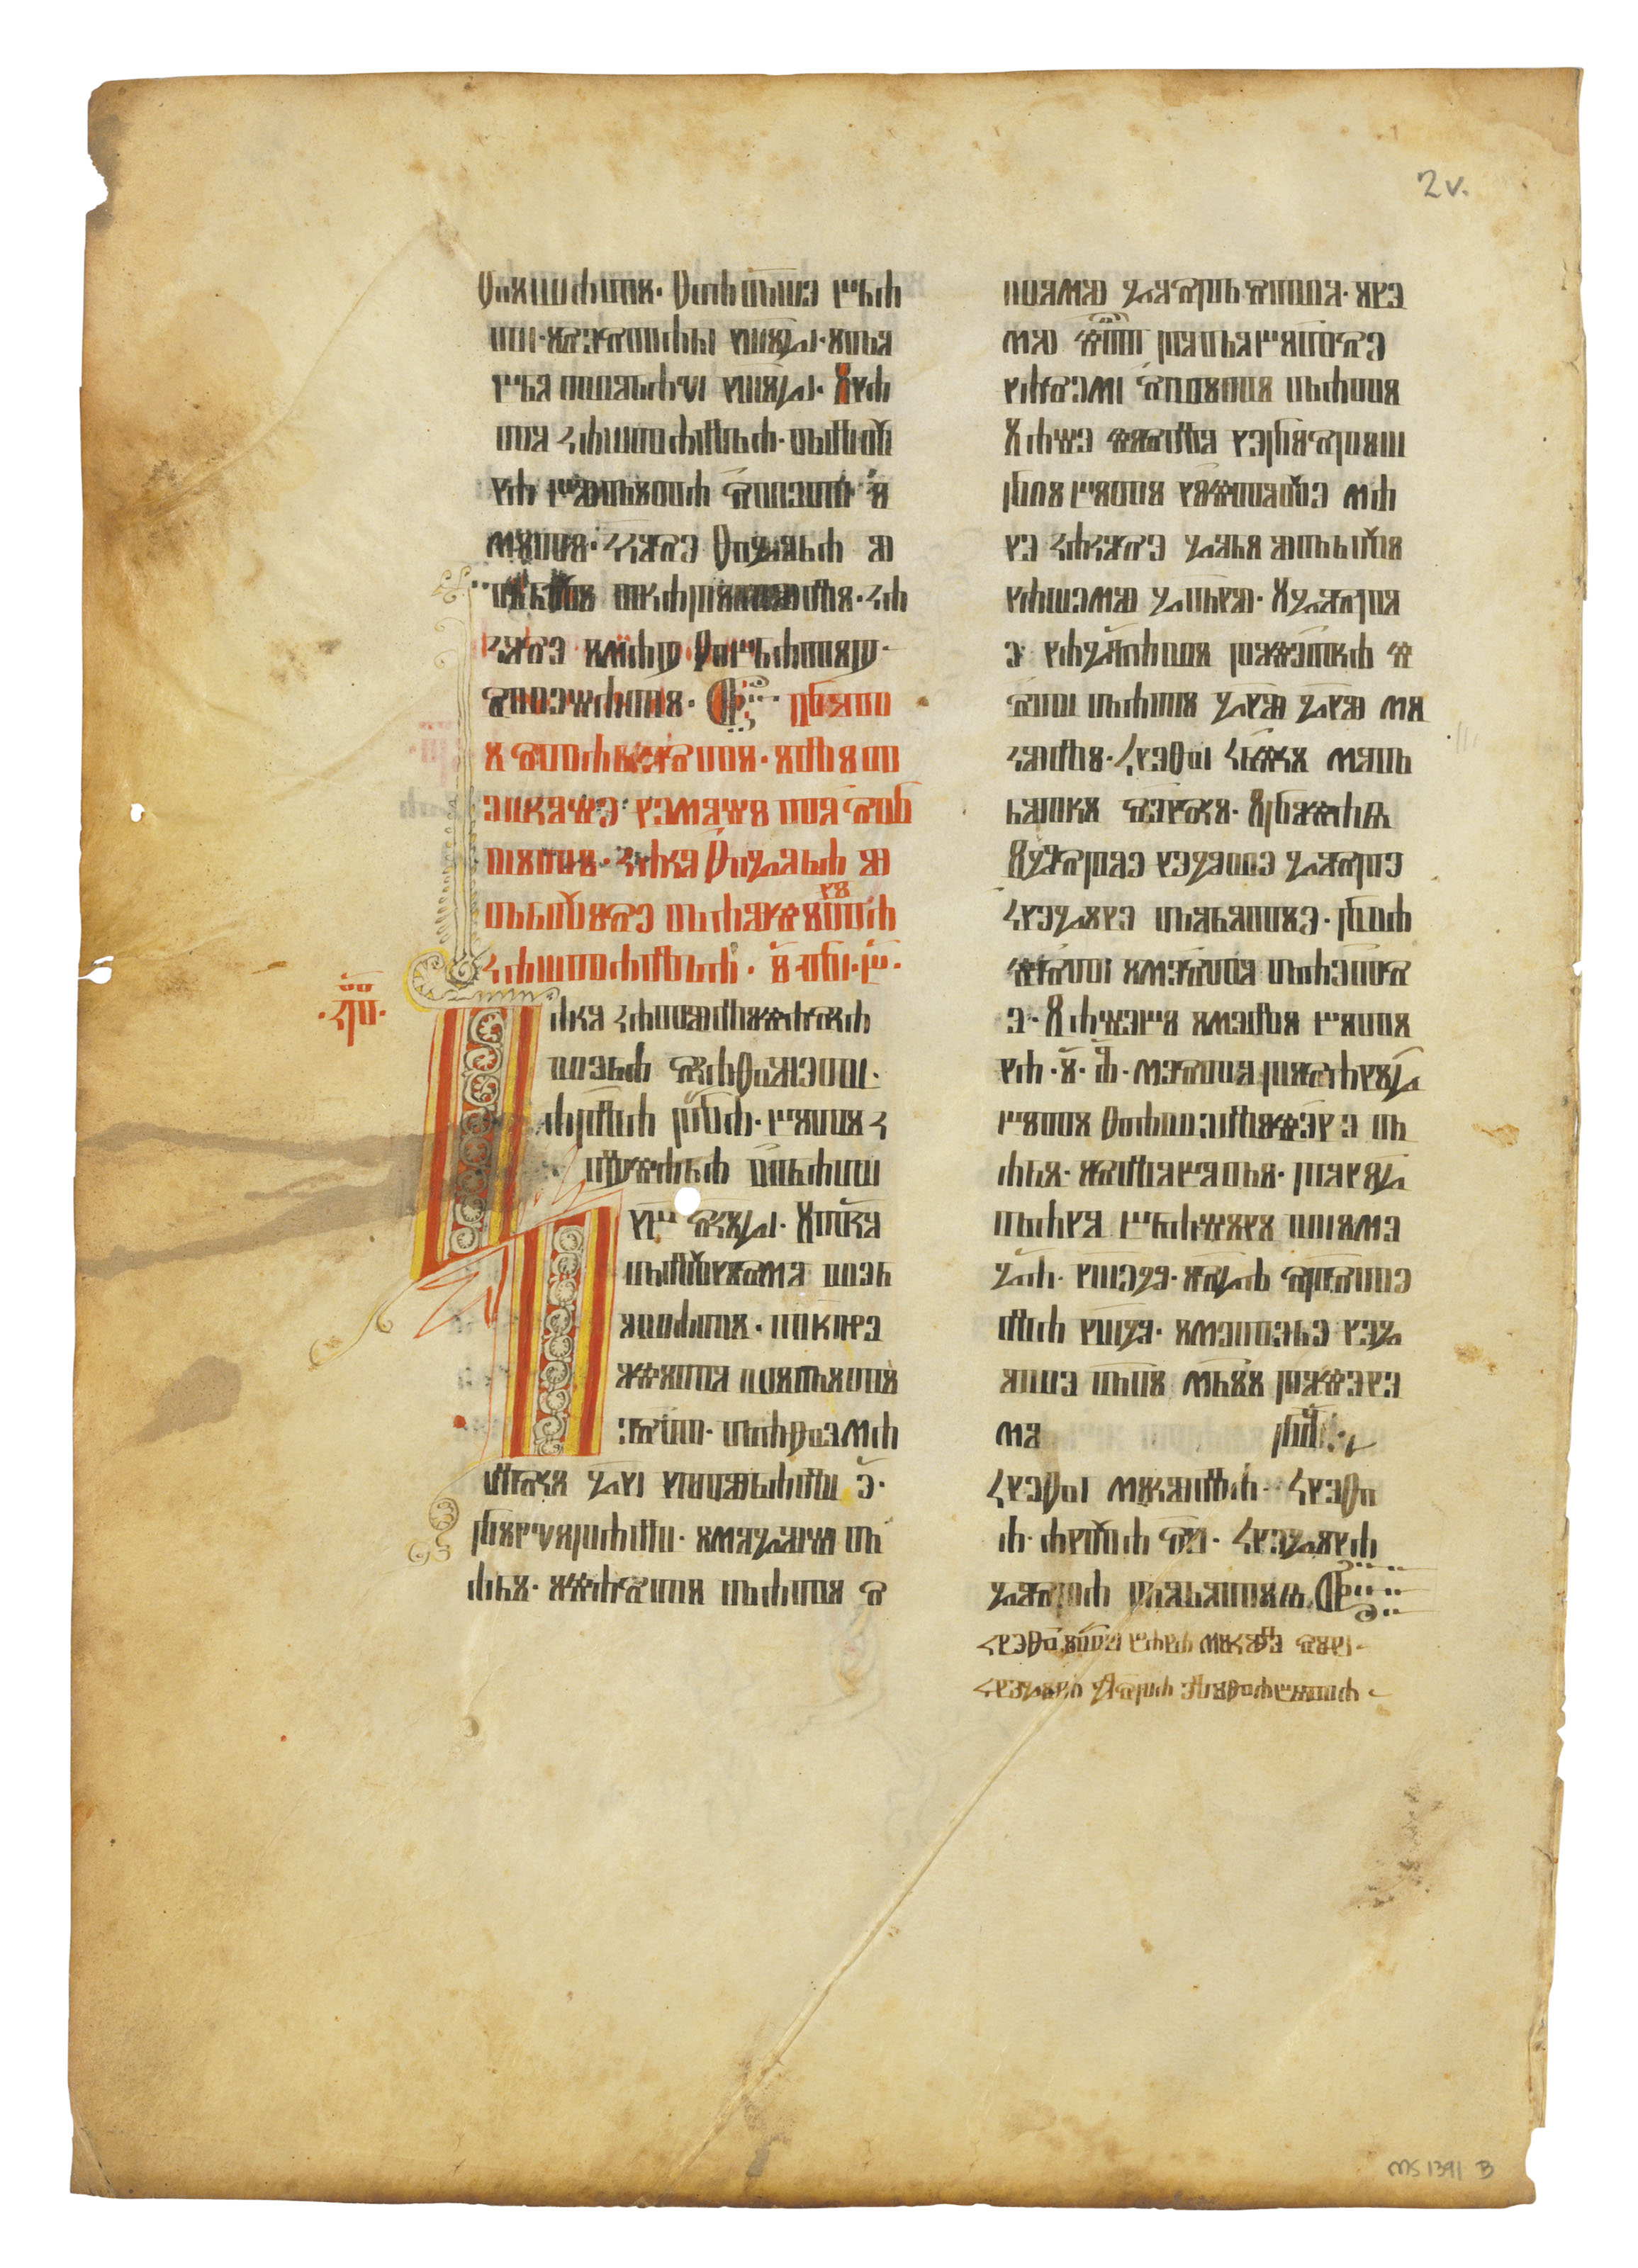 STATUTES OR RULES OF ASSOCIATION OF A LAY FRATERNITY, ch. 12-16, in Cakavian Croatian, illuminated manuscript on vellum [Island of Krk, Croatia, early 15th century]